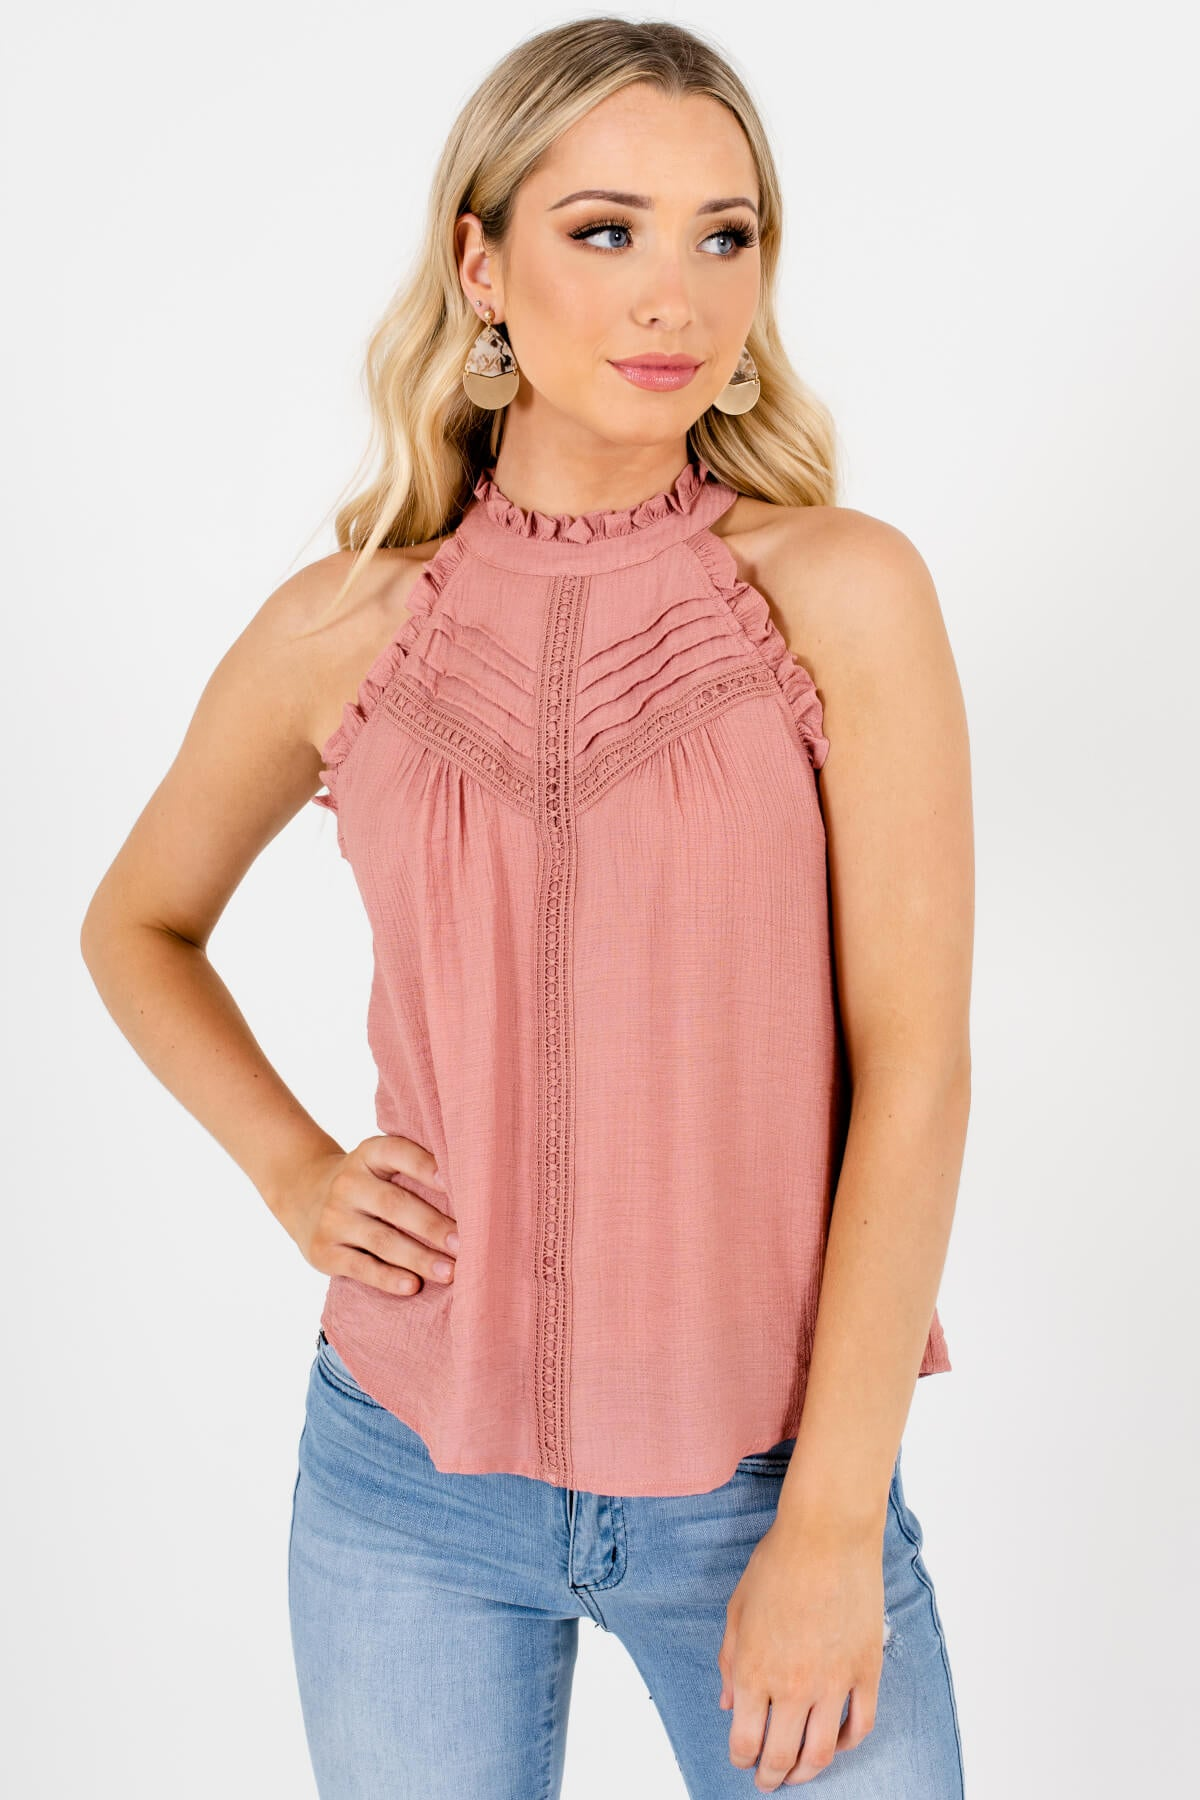 Salmon Pink Crochet Lace Ruffle Pleated Tank Tops for Women